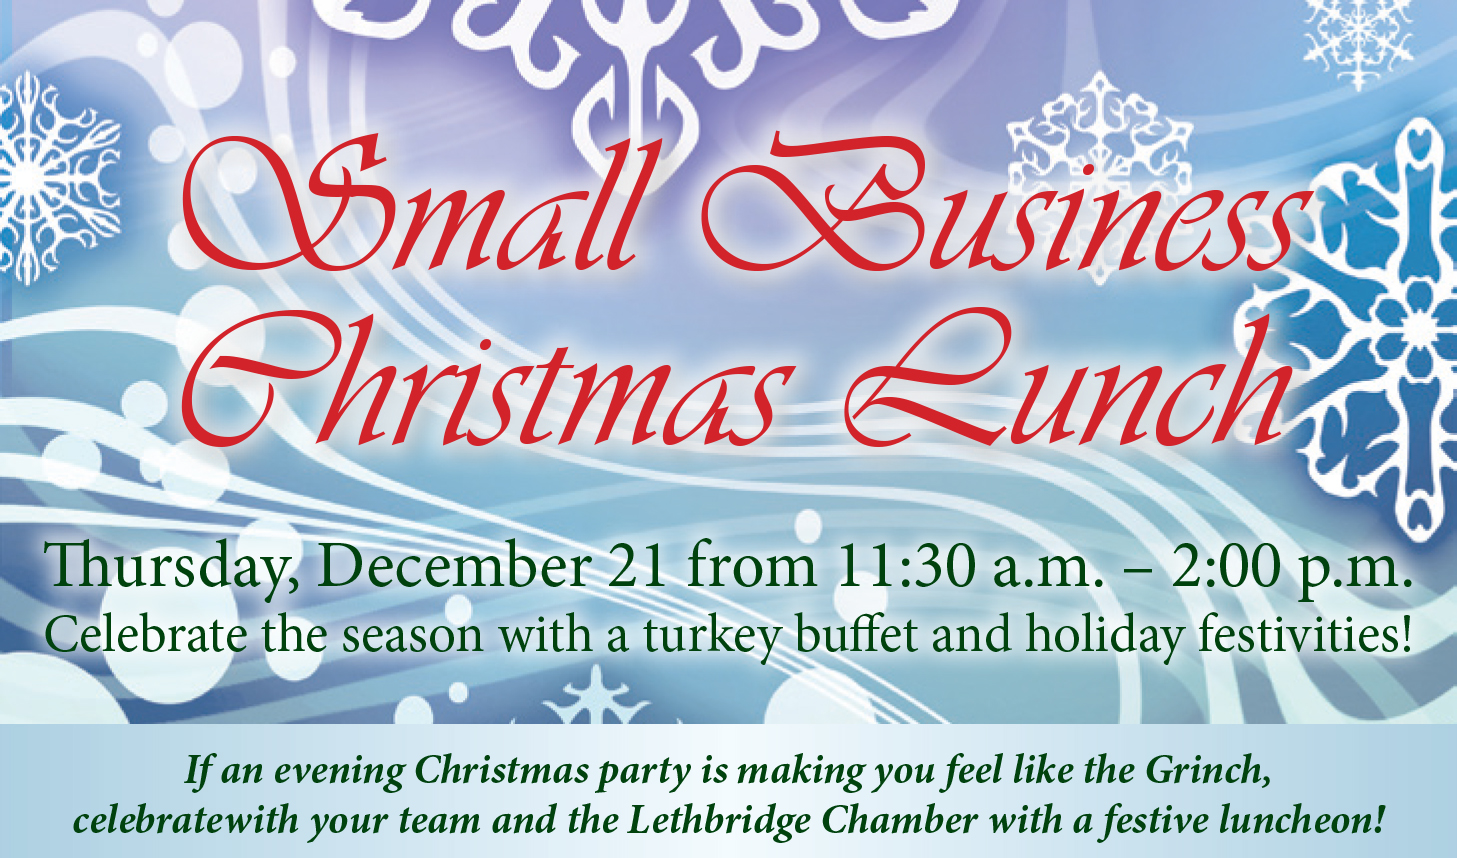 Small-Business-Christmas-Lunch.jpg